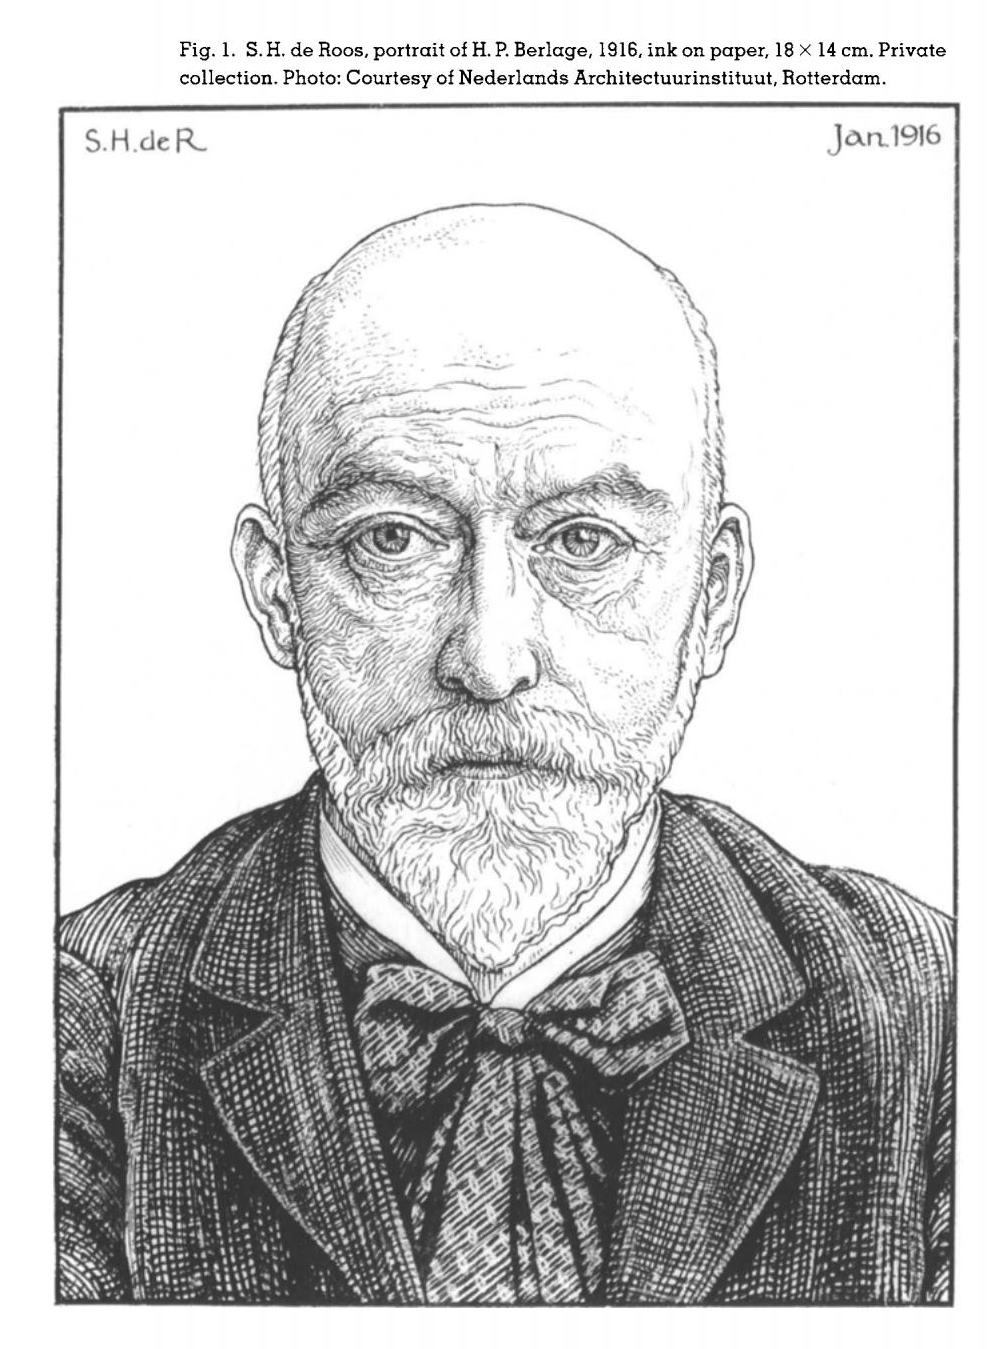 portrait of H. P. Berlage, 1916